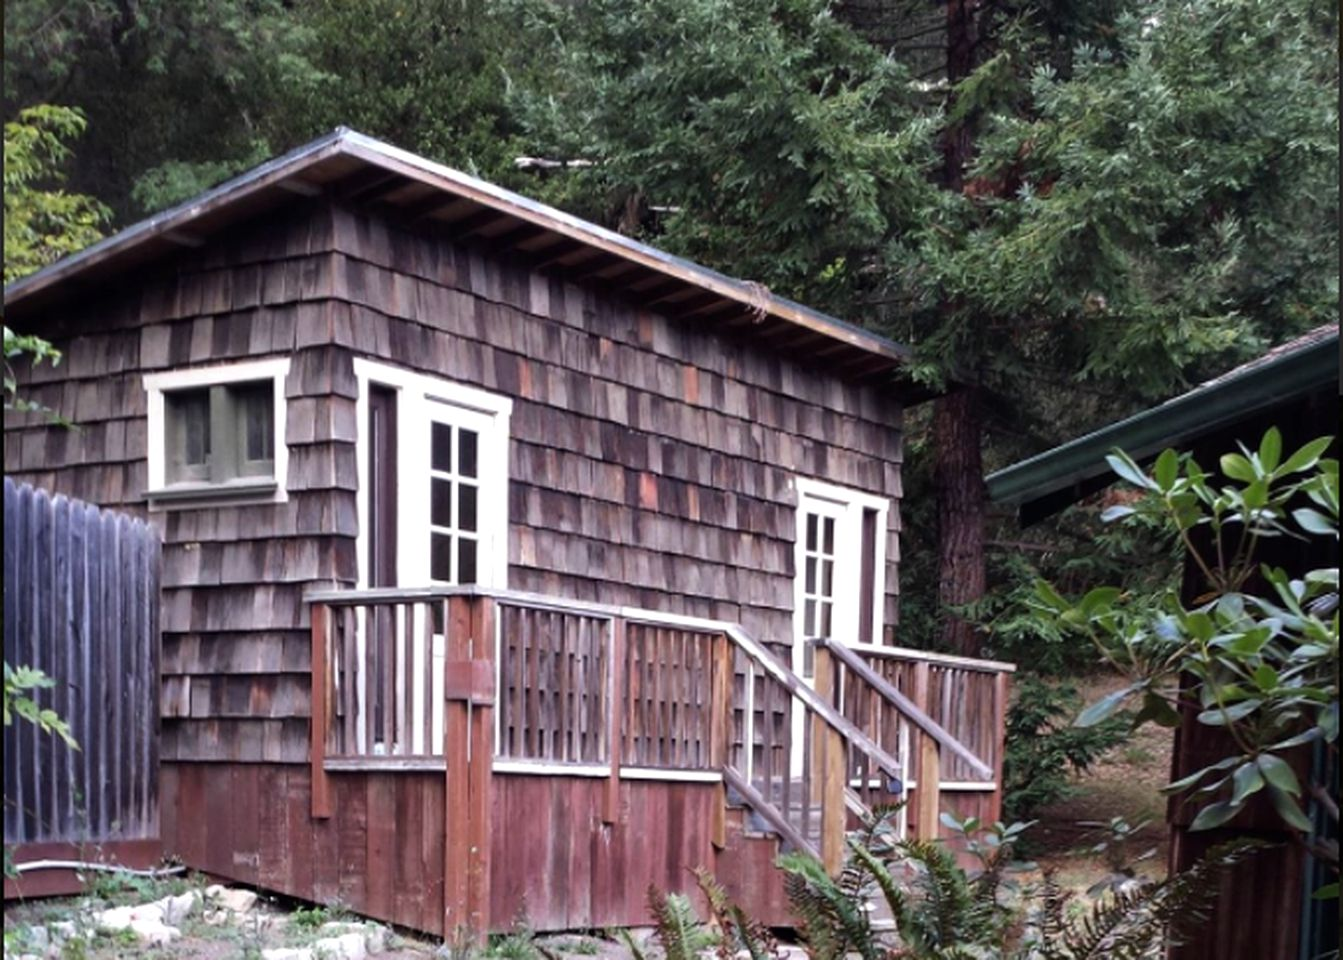 Shingled cabin rental surrounded by pine trees near the Big Basin Redwoods State Park in California.